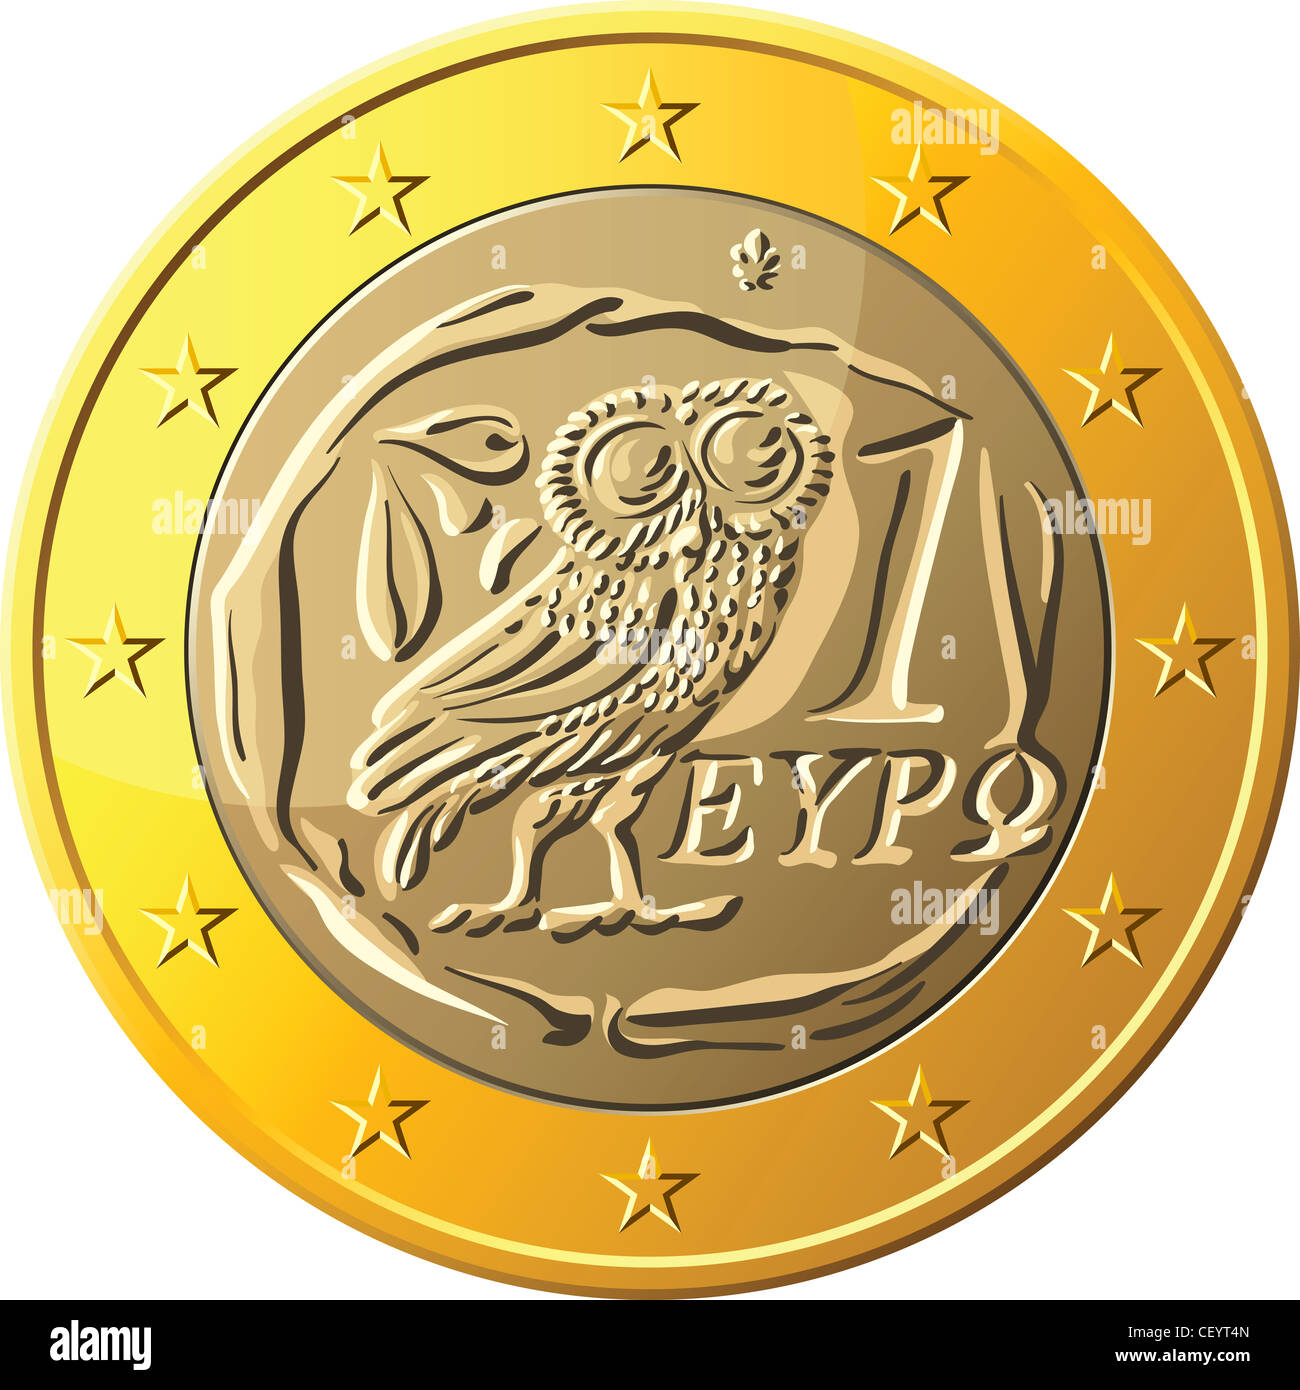 Greek money gold coin euro with the image of an owl - the emblem of Pallas Athena, a symbol of wisdom and the olive - Stock Image